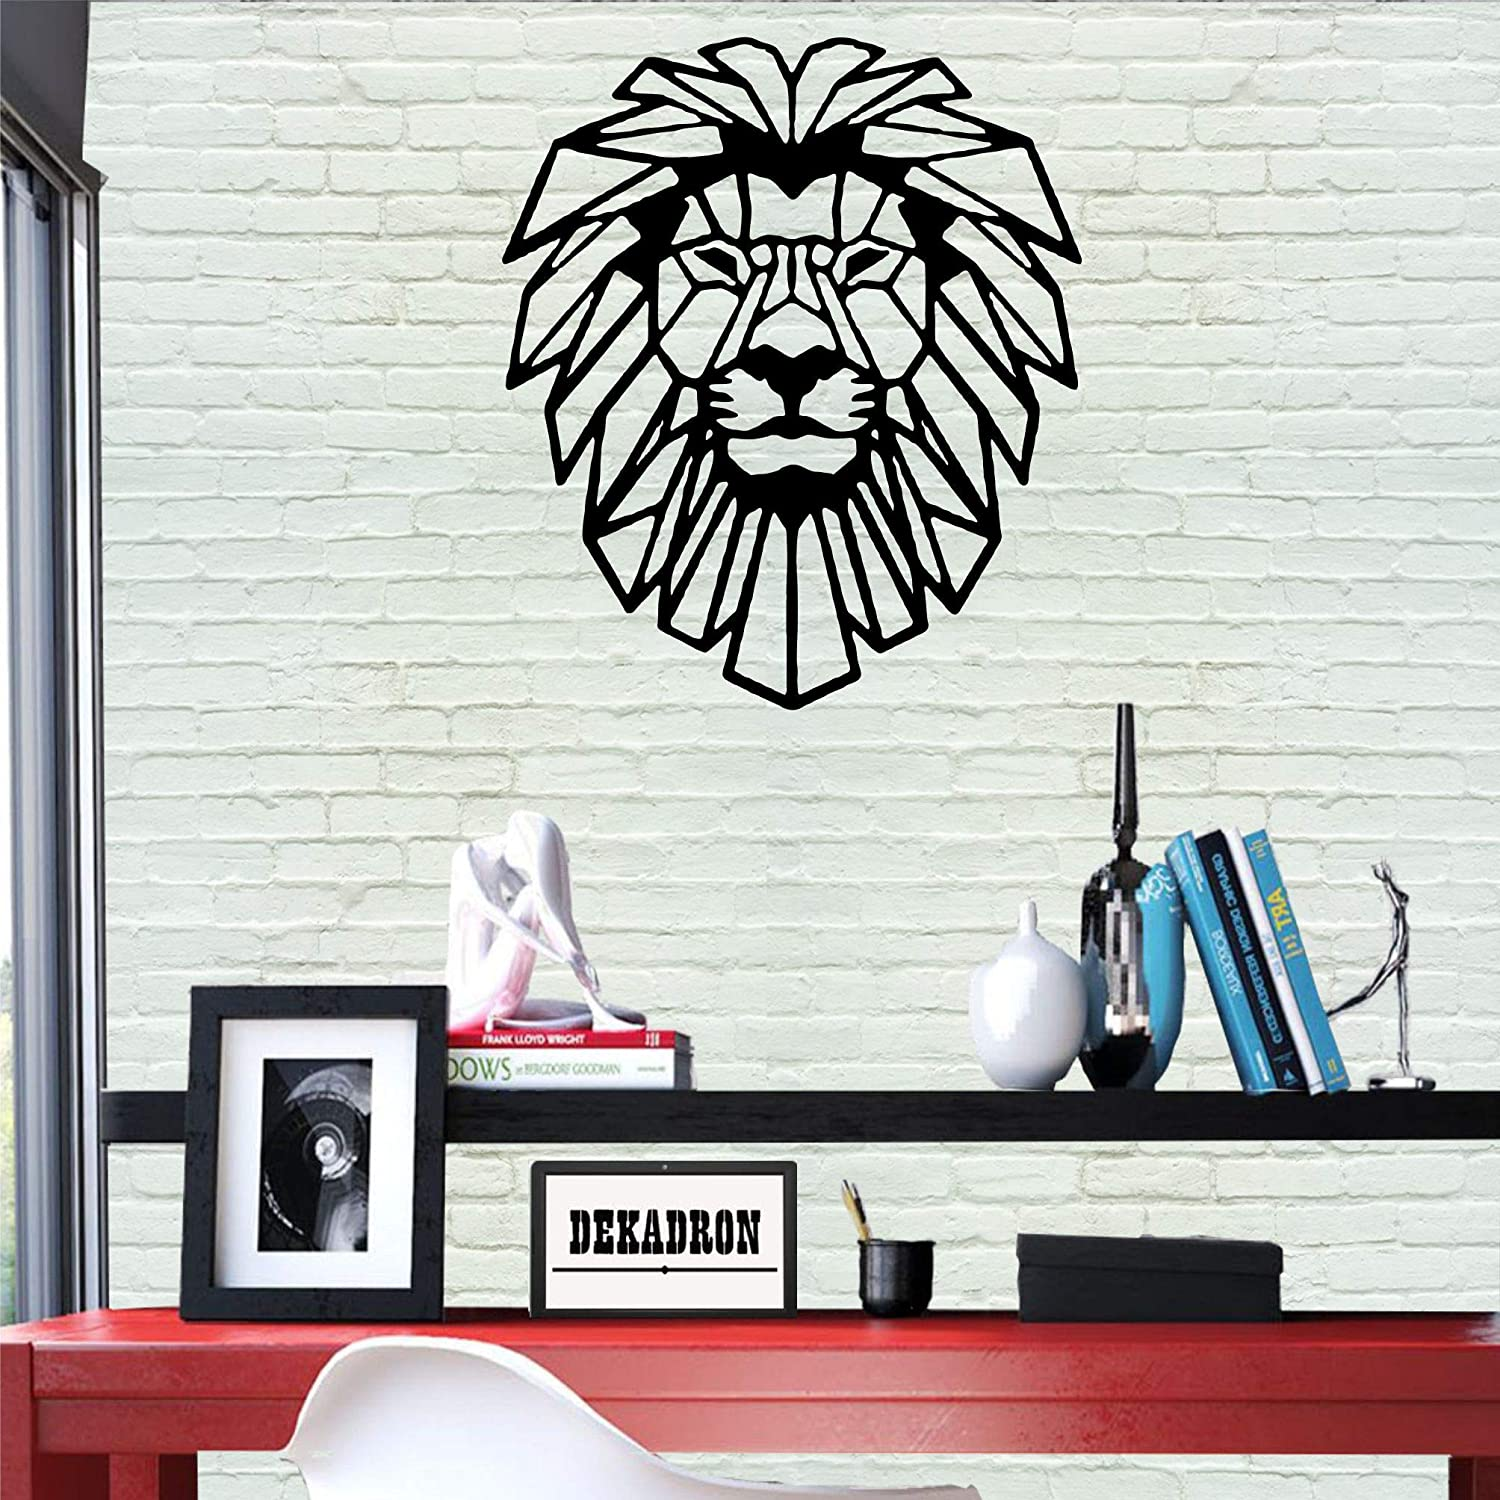 "Metal Wall Art - Lion Head - 3D Wall Silhouette Metal Wall Decor Home Office Decoration Bedroom Living Room Decor Sculpture (21"" W x 24"" H/51x61cm)"